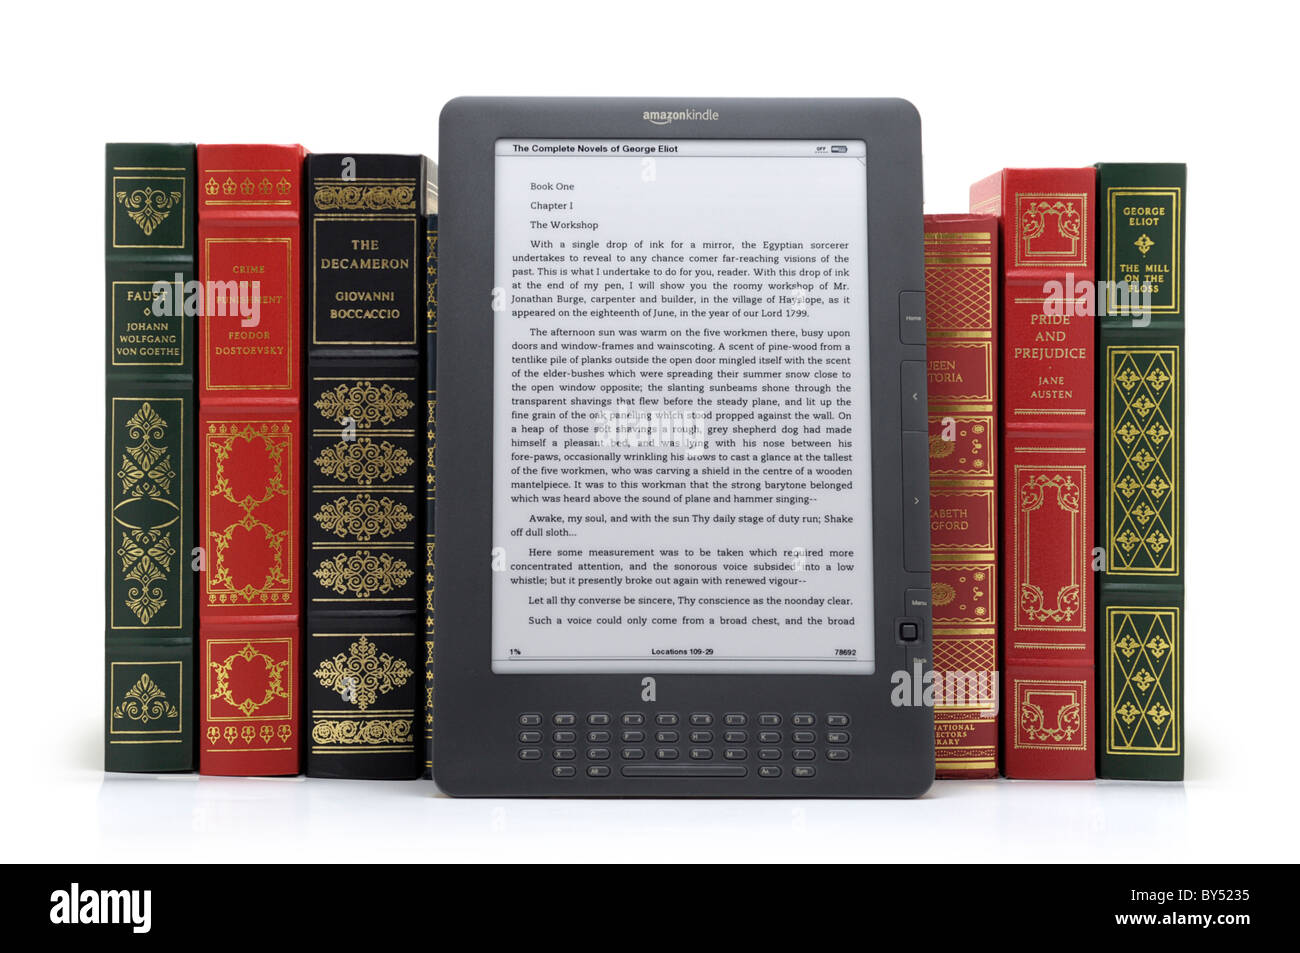 eBook Reader, Amazon Kindle DX 9.7' Latest generation - Stock Image